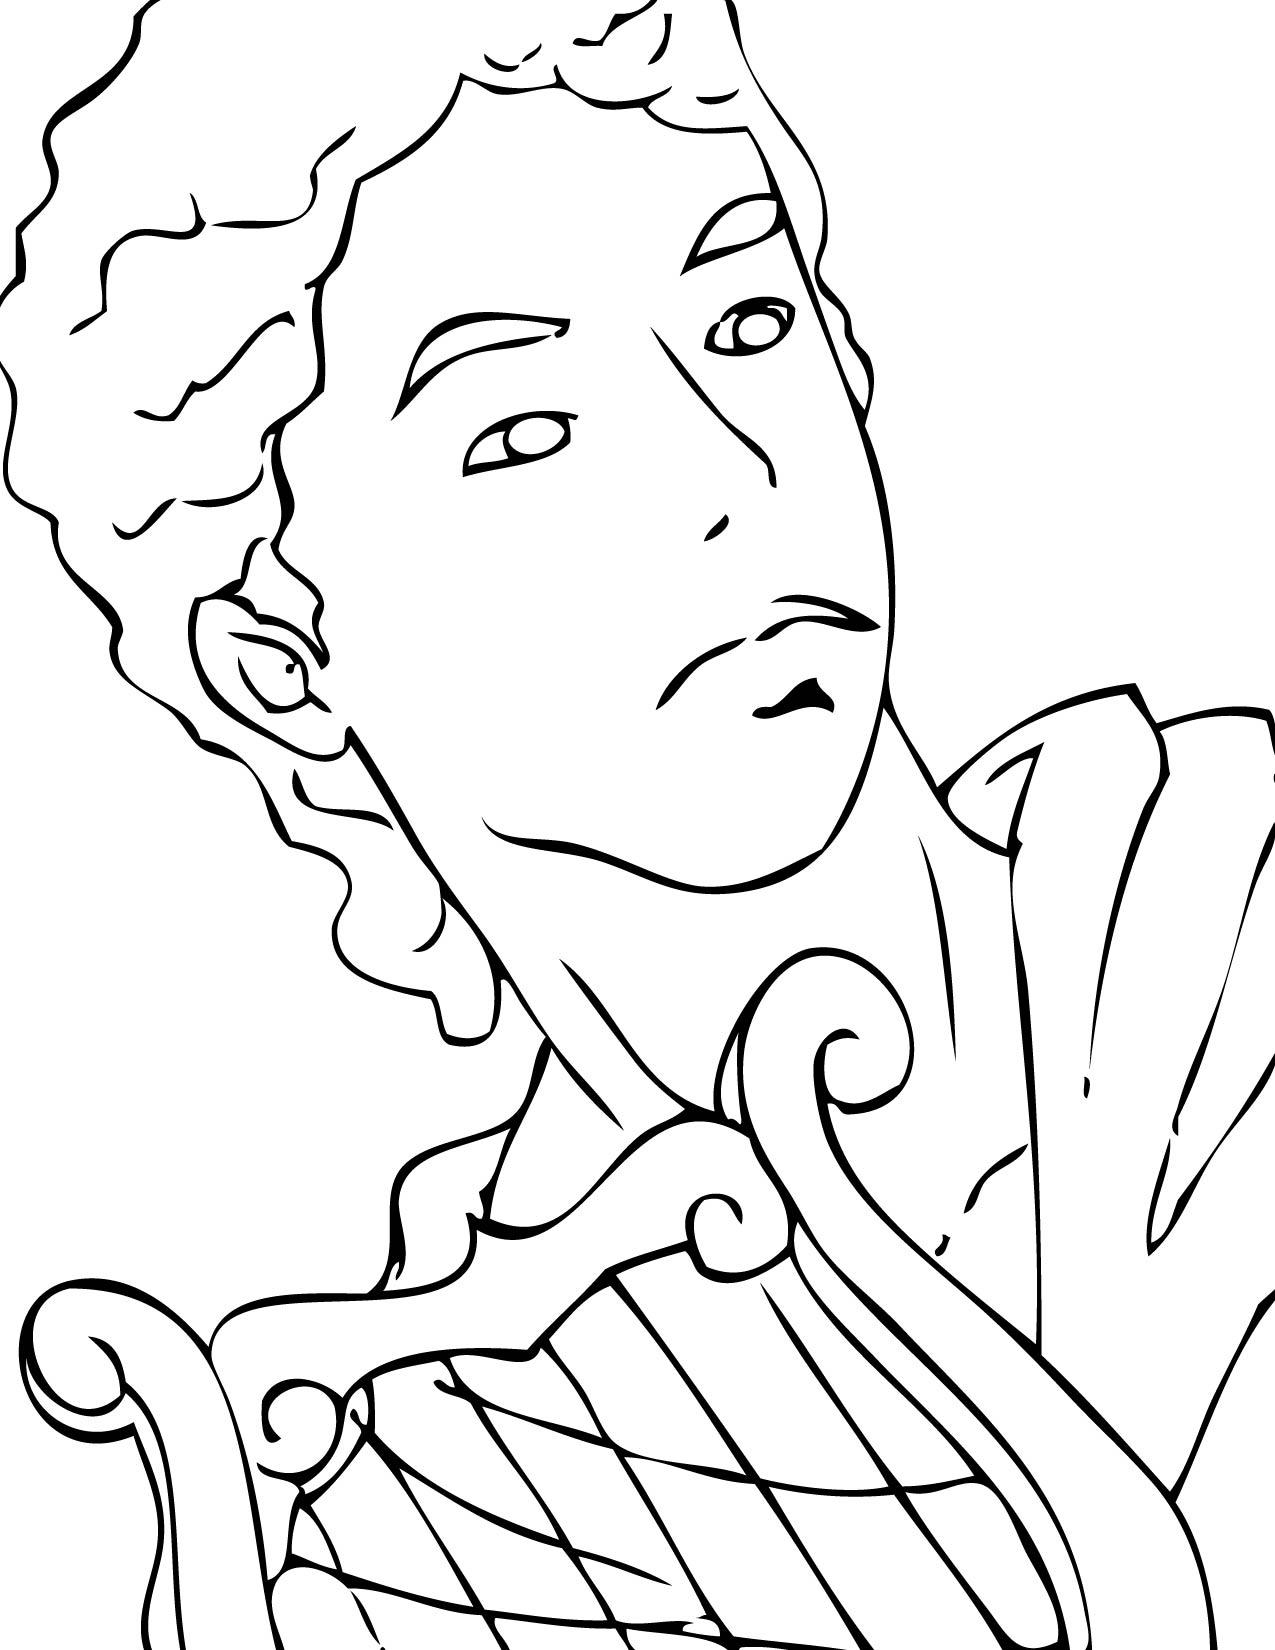 social studies greece on emaze - Ancient Greek Gods Coloring Pages